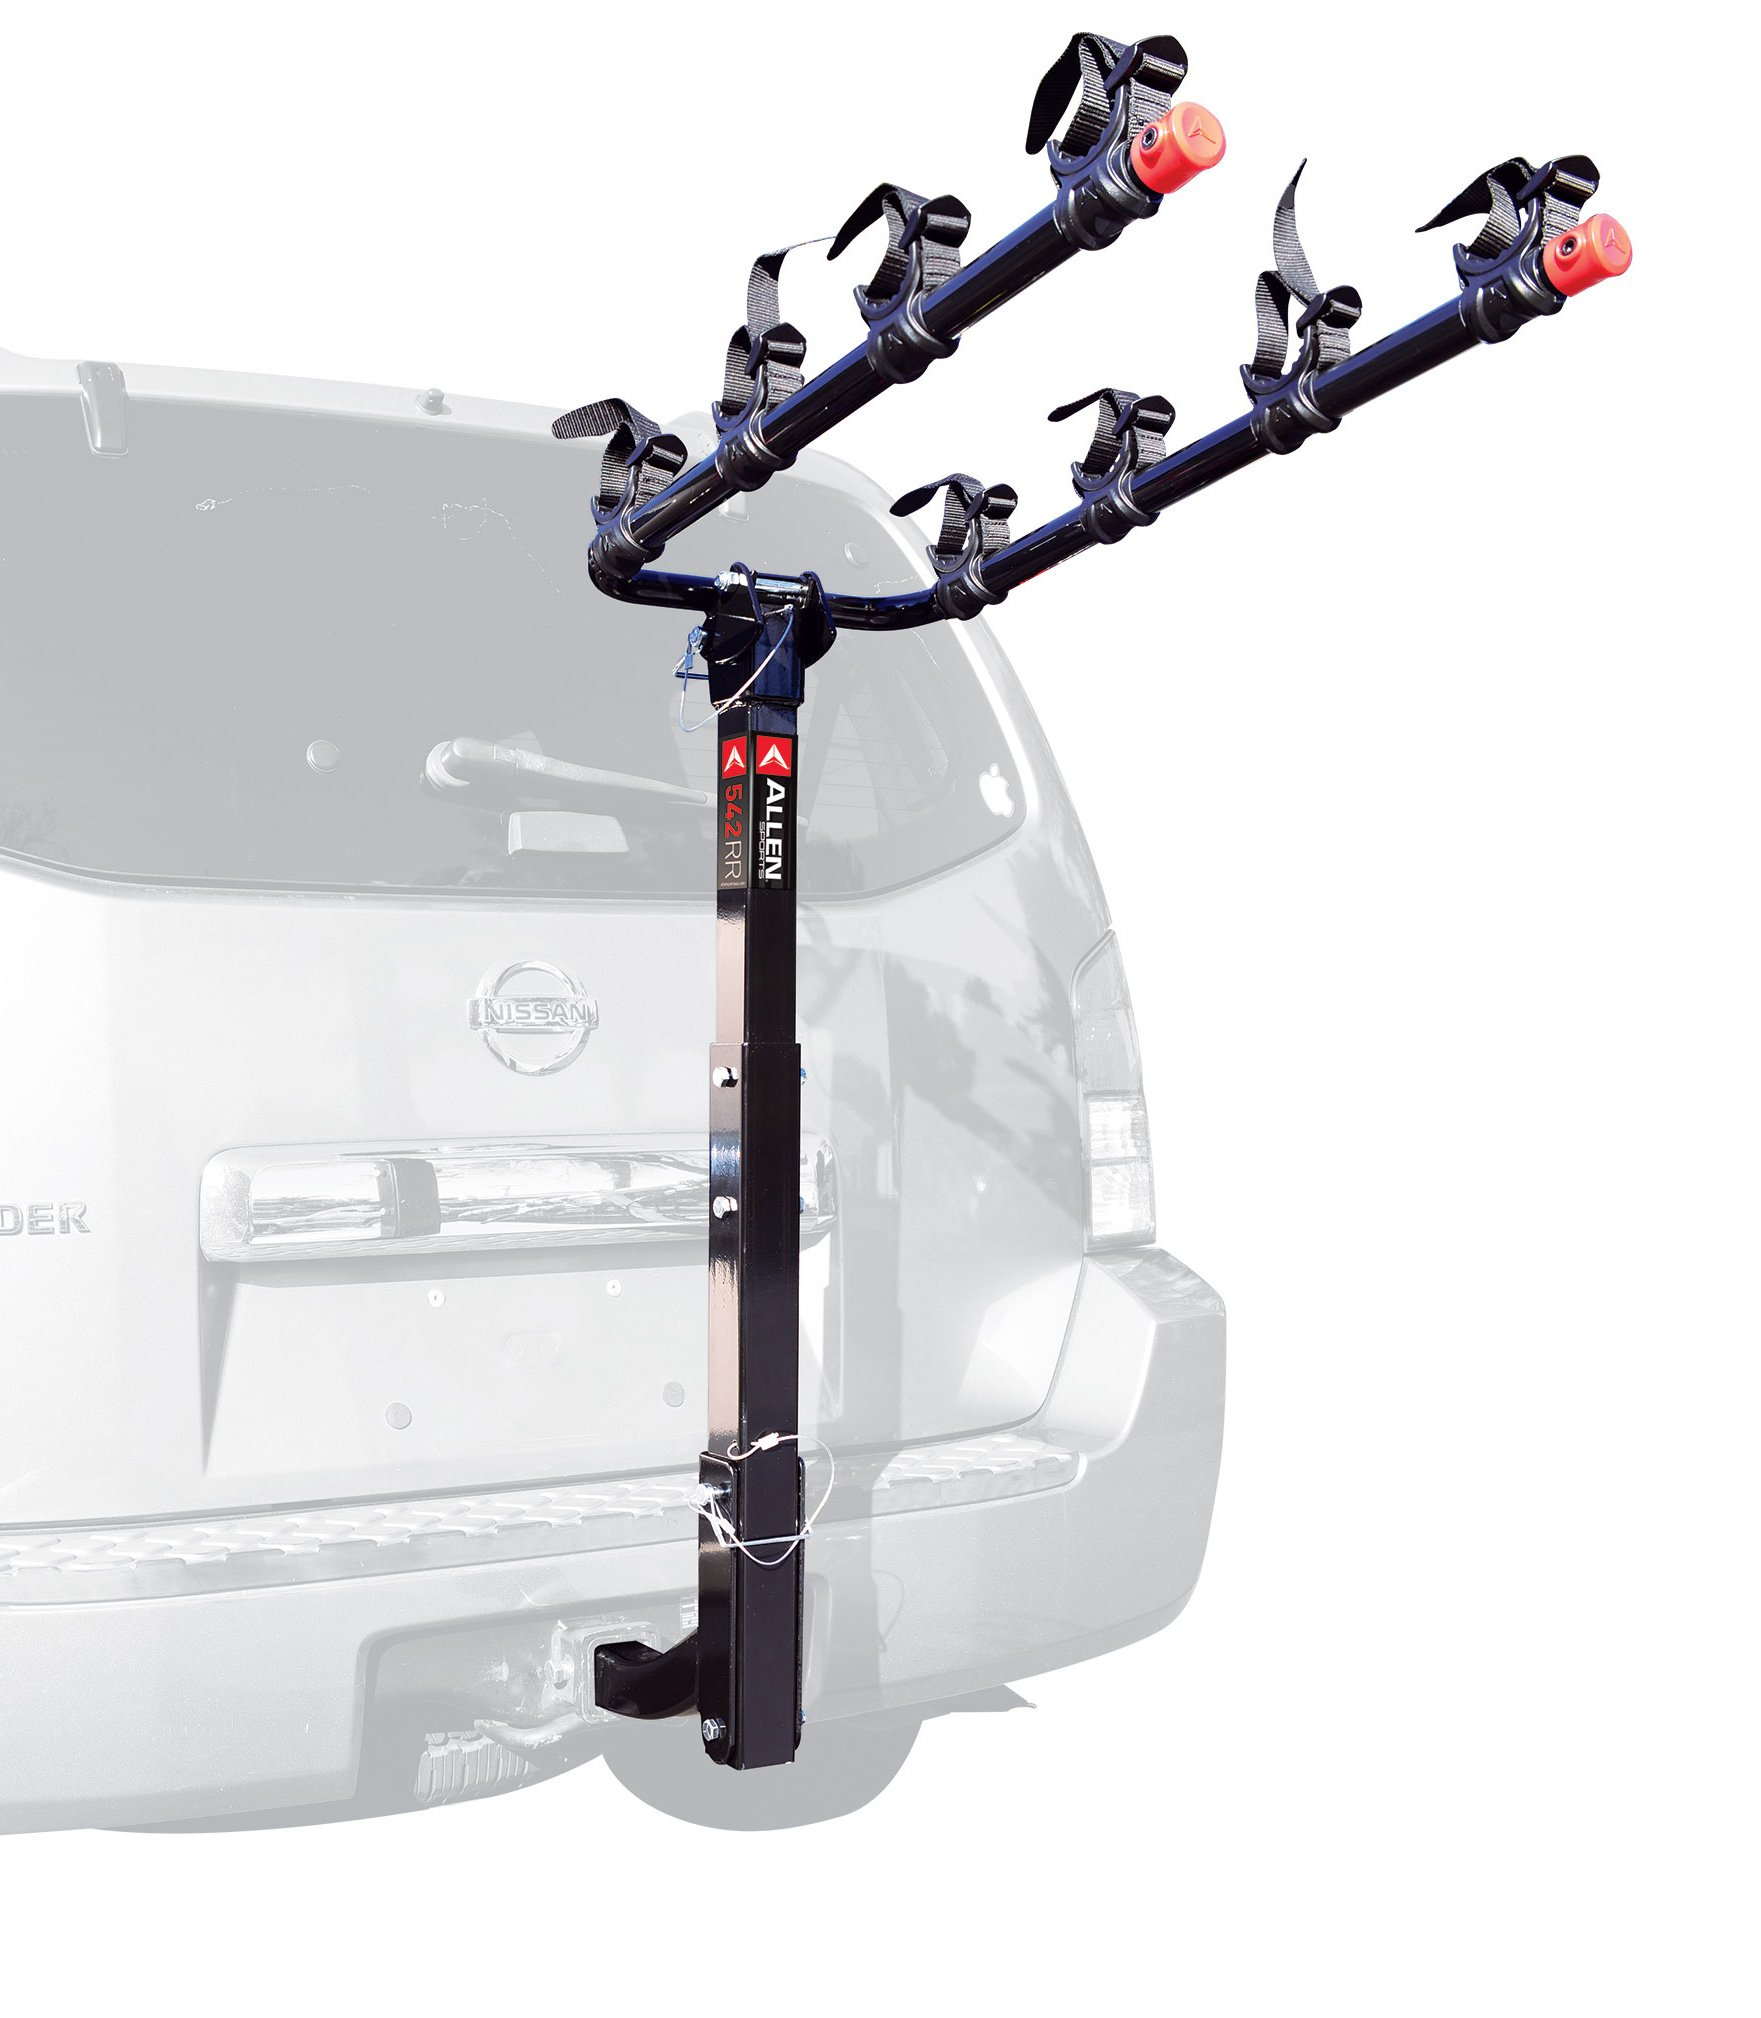 Allen Sports Deluxe 4-Bike Hitch Mount Rack with 2-Inch Receiver by Allen Sports